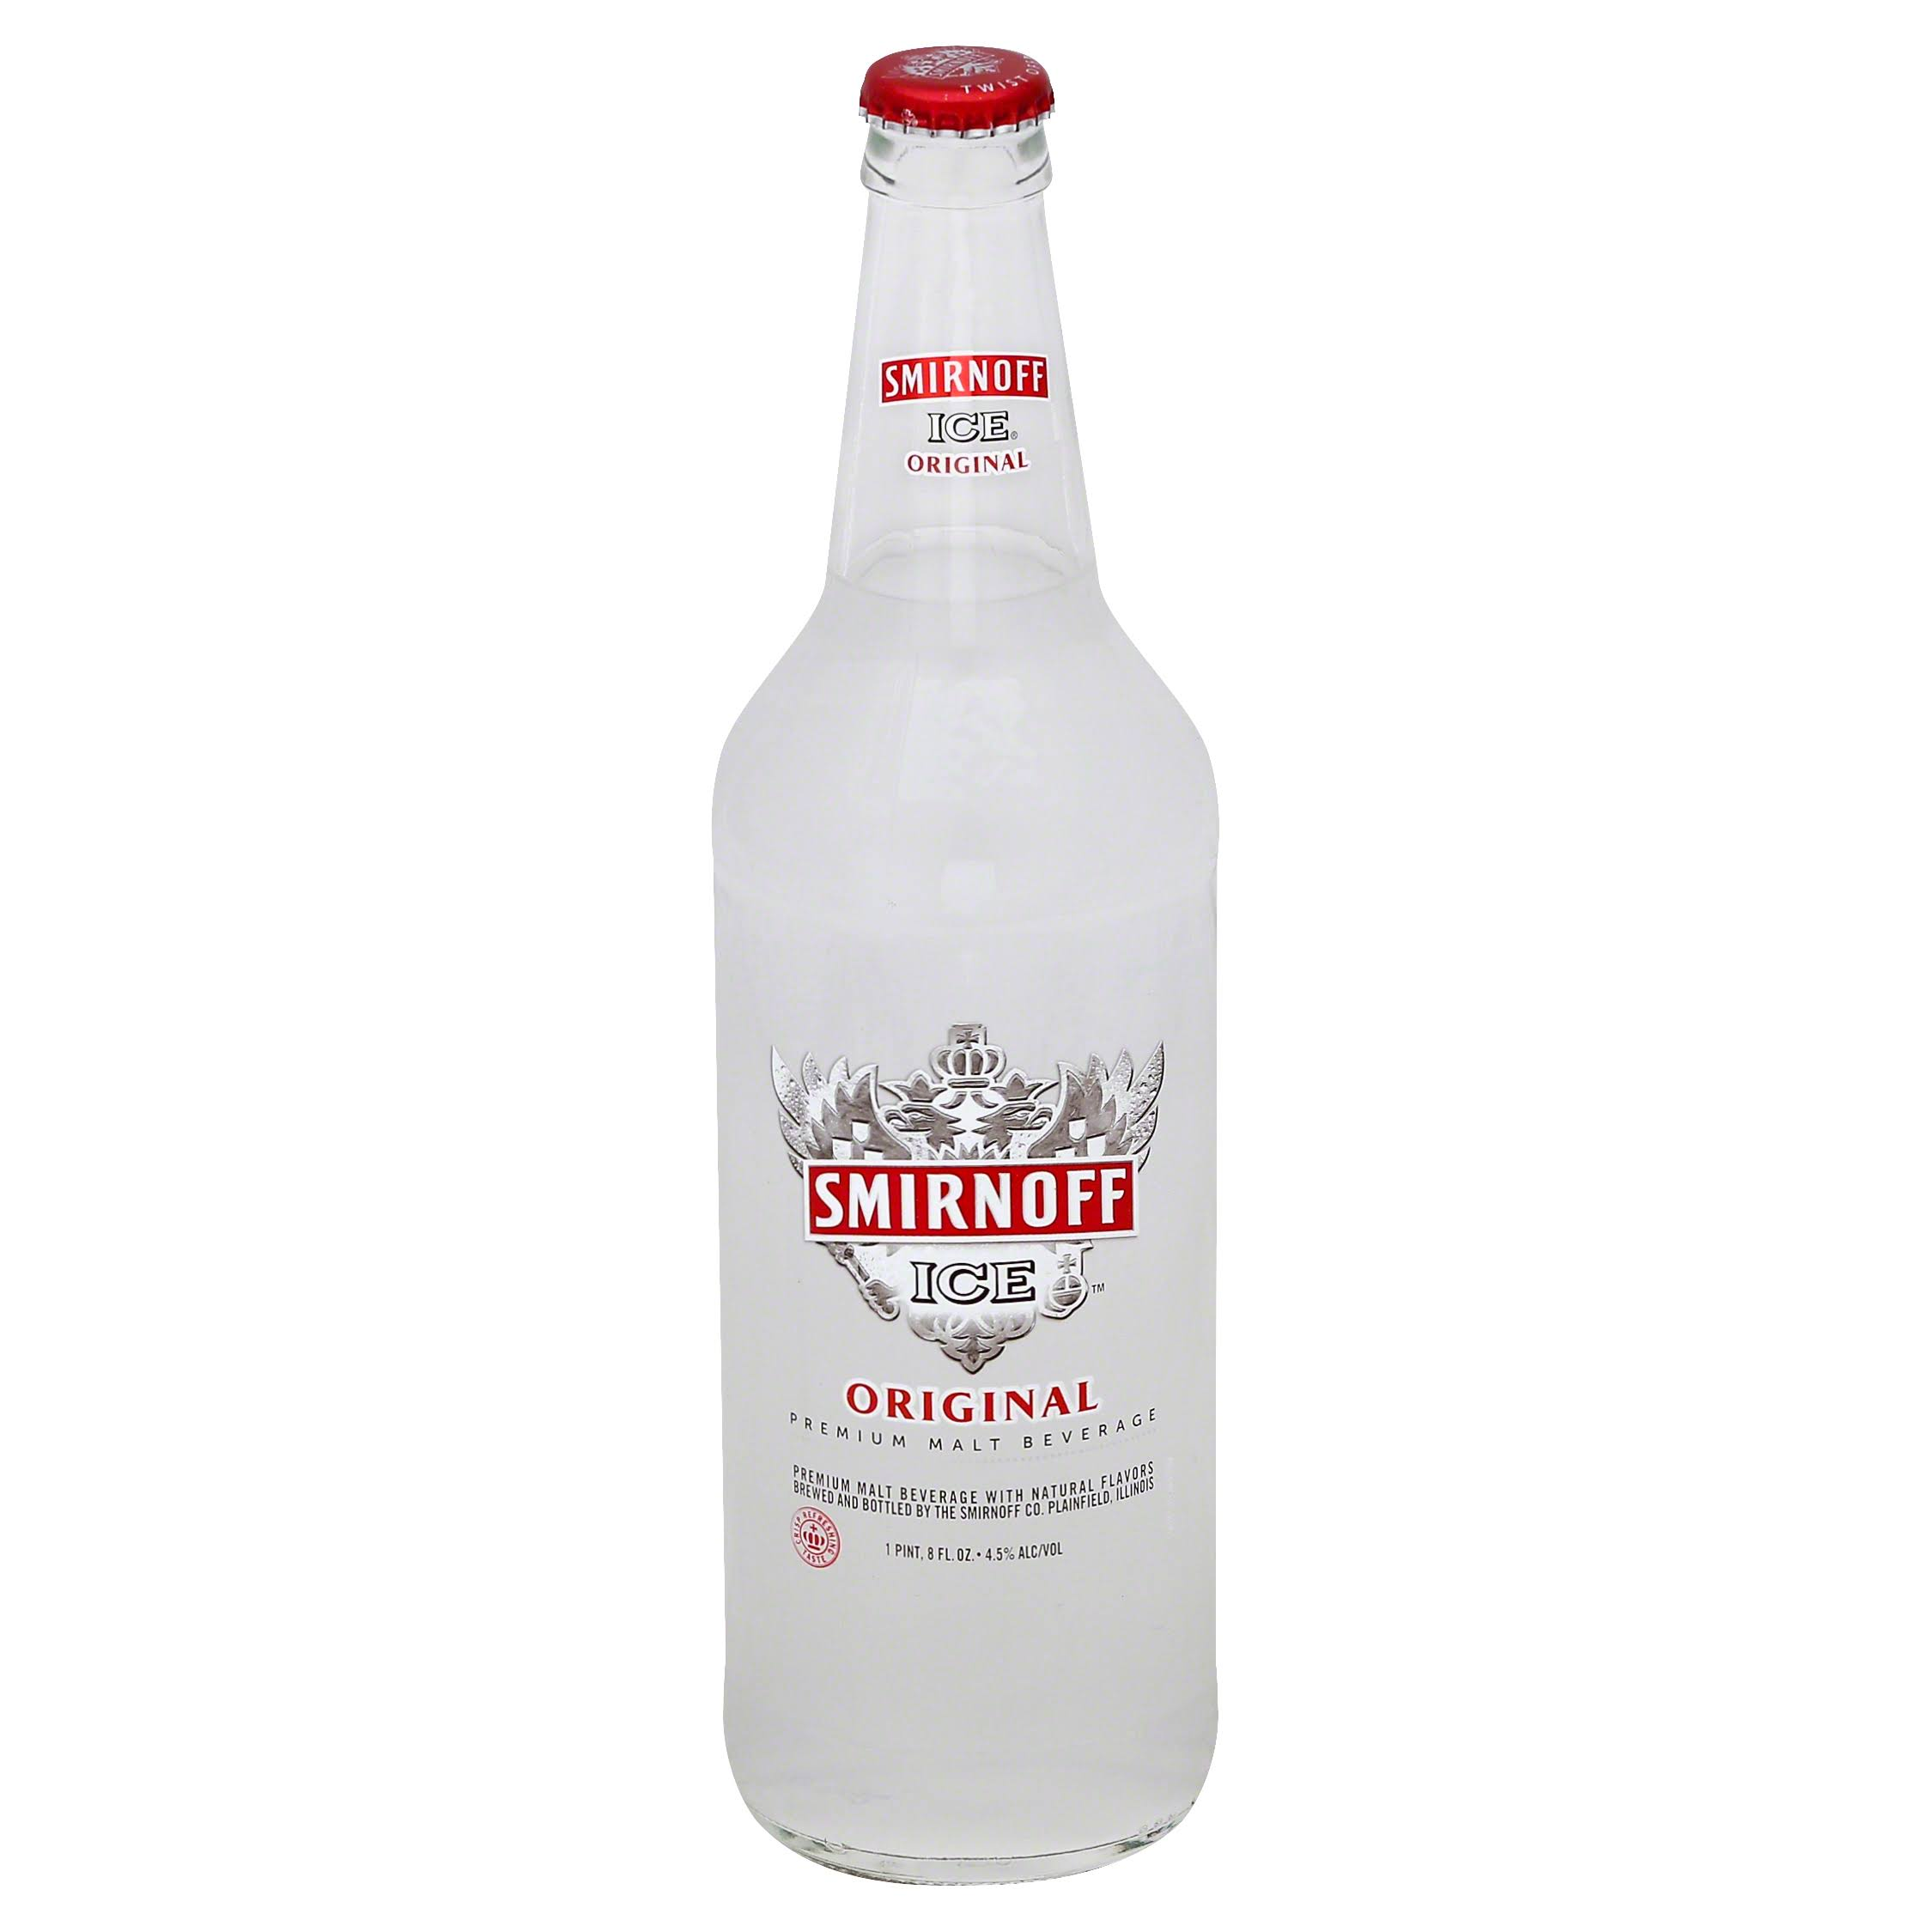 Smirnoff Premium Malt Beverage - Ice Triple Filtered